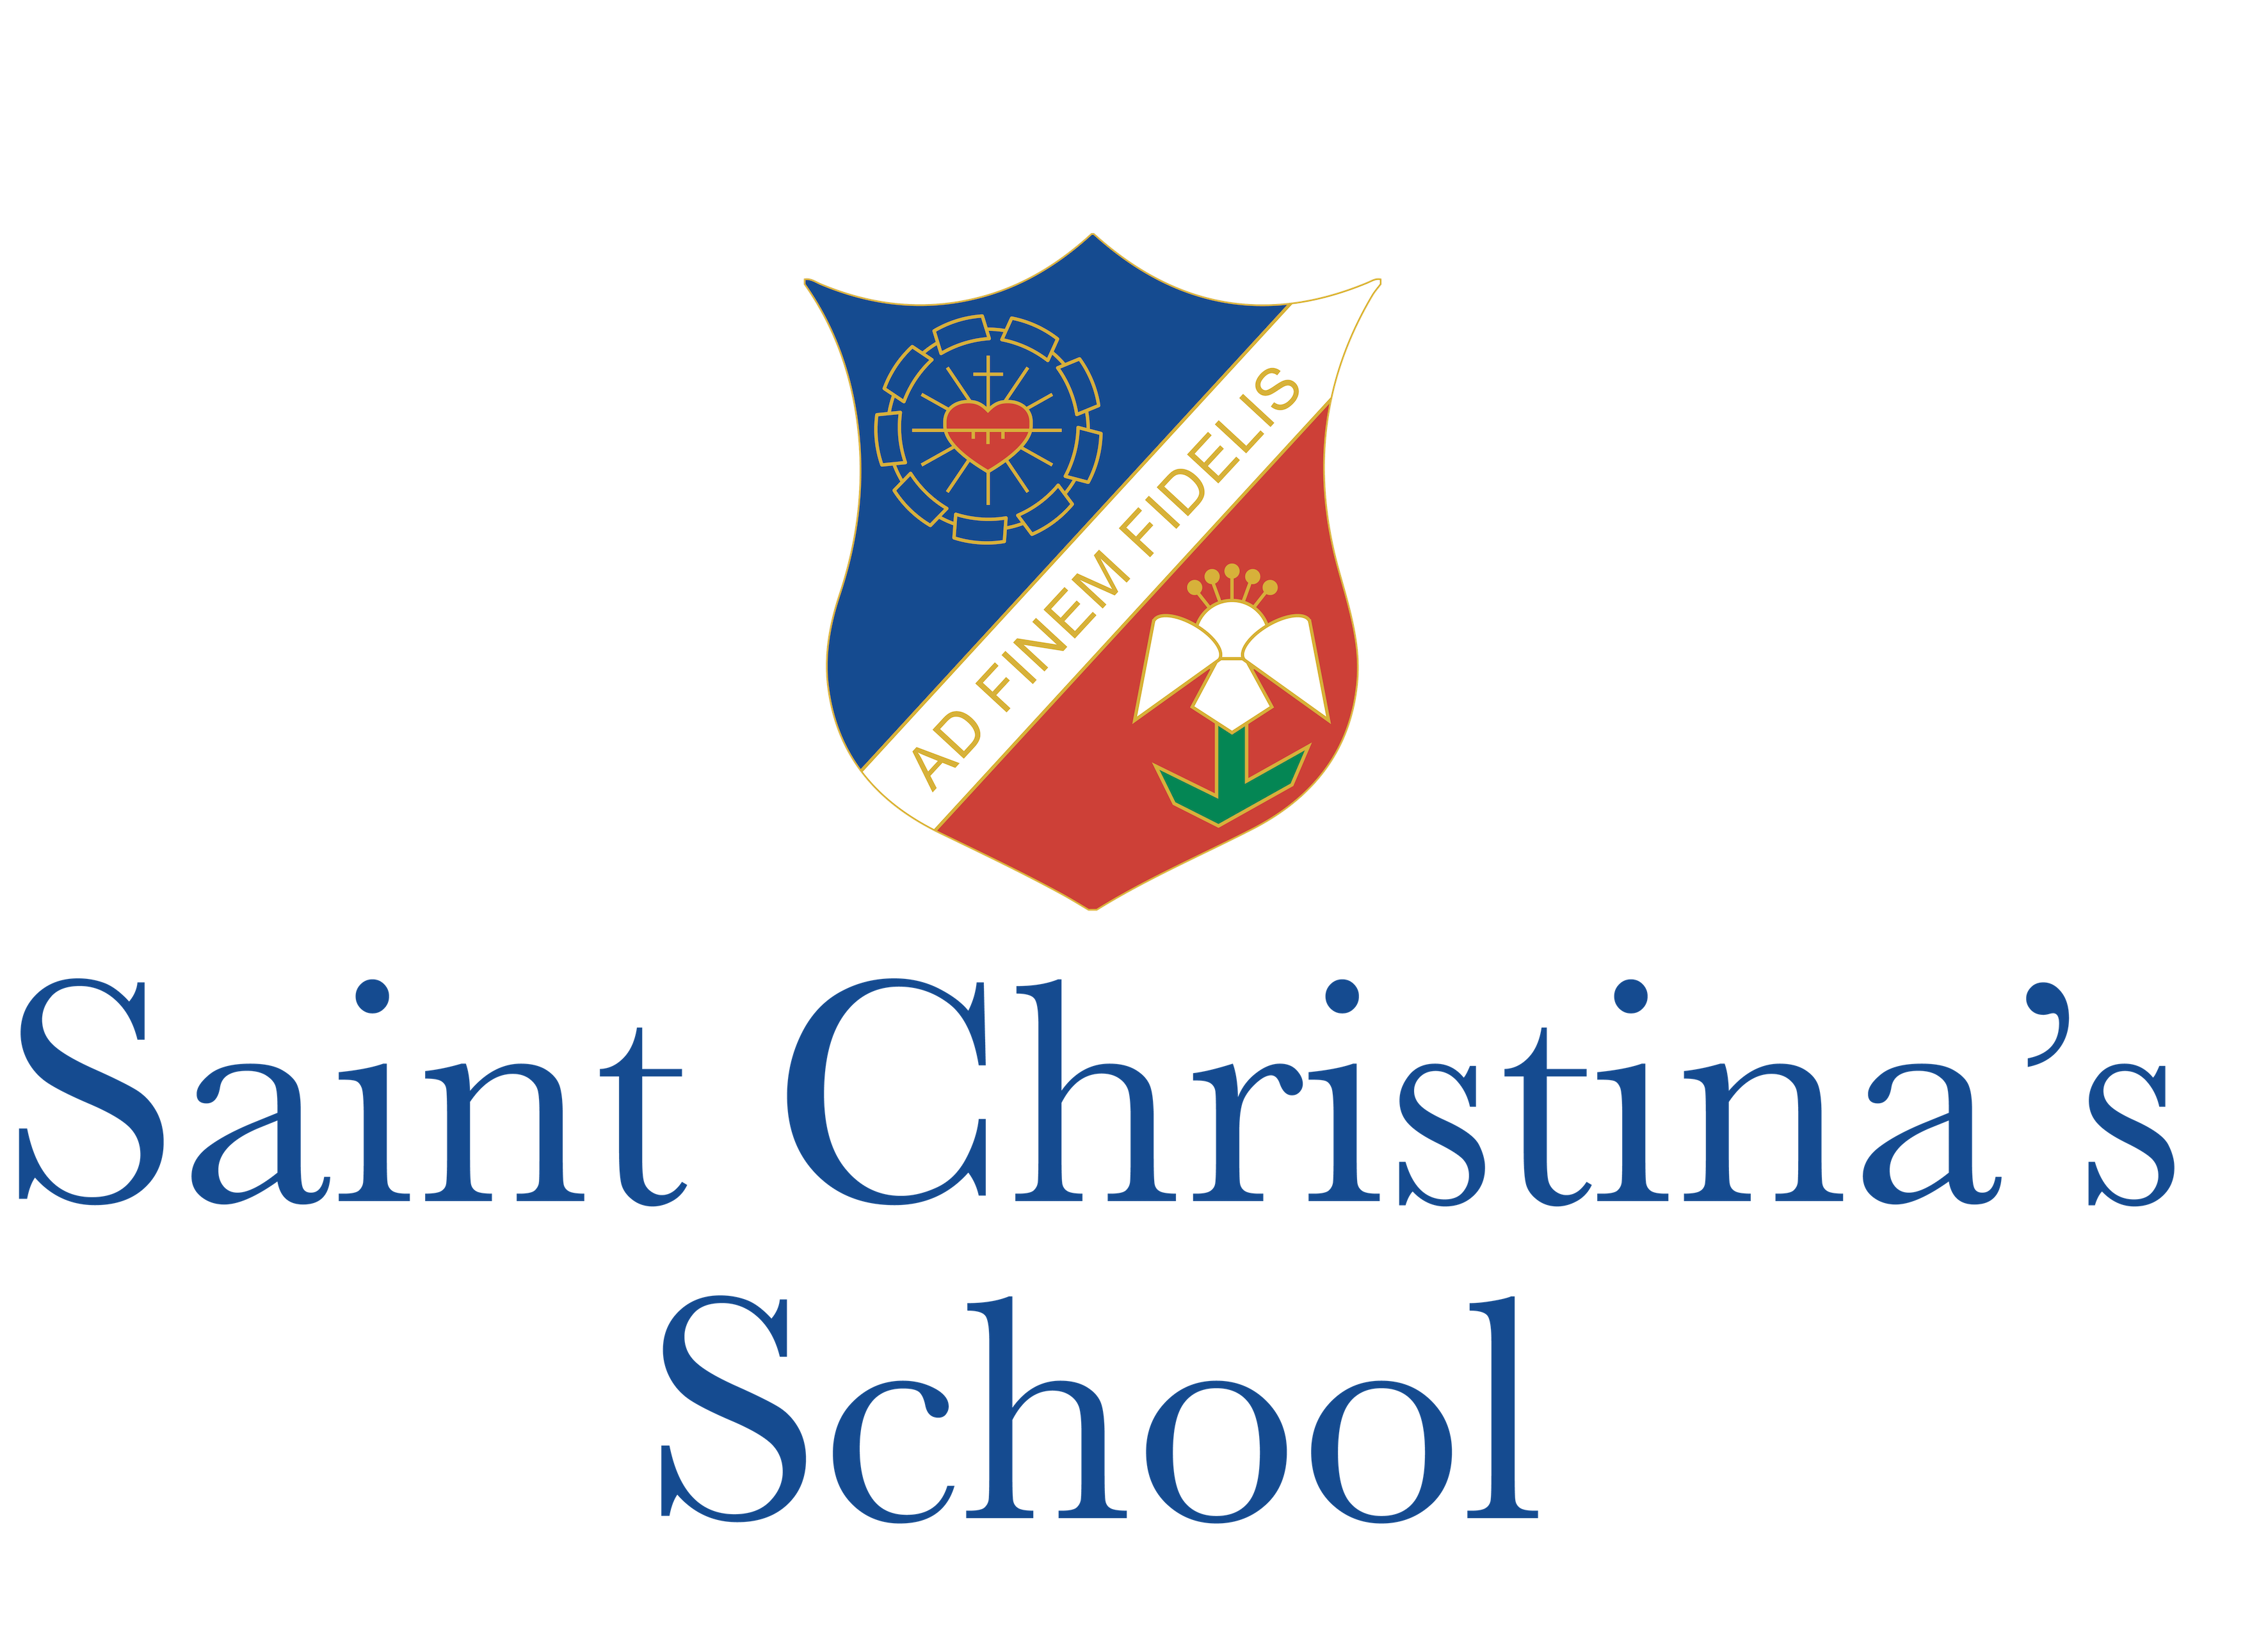 Saint Christina's School